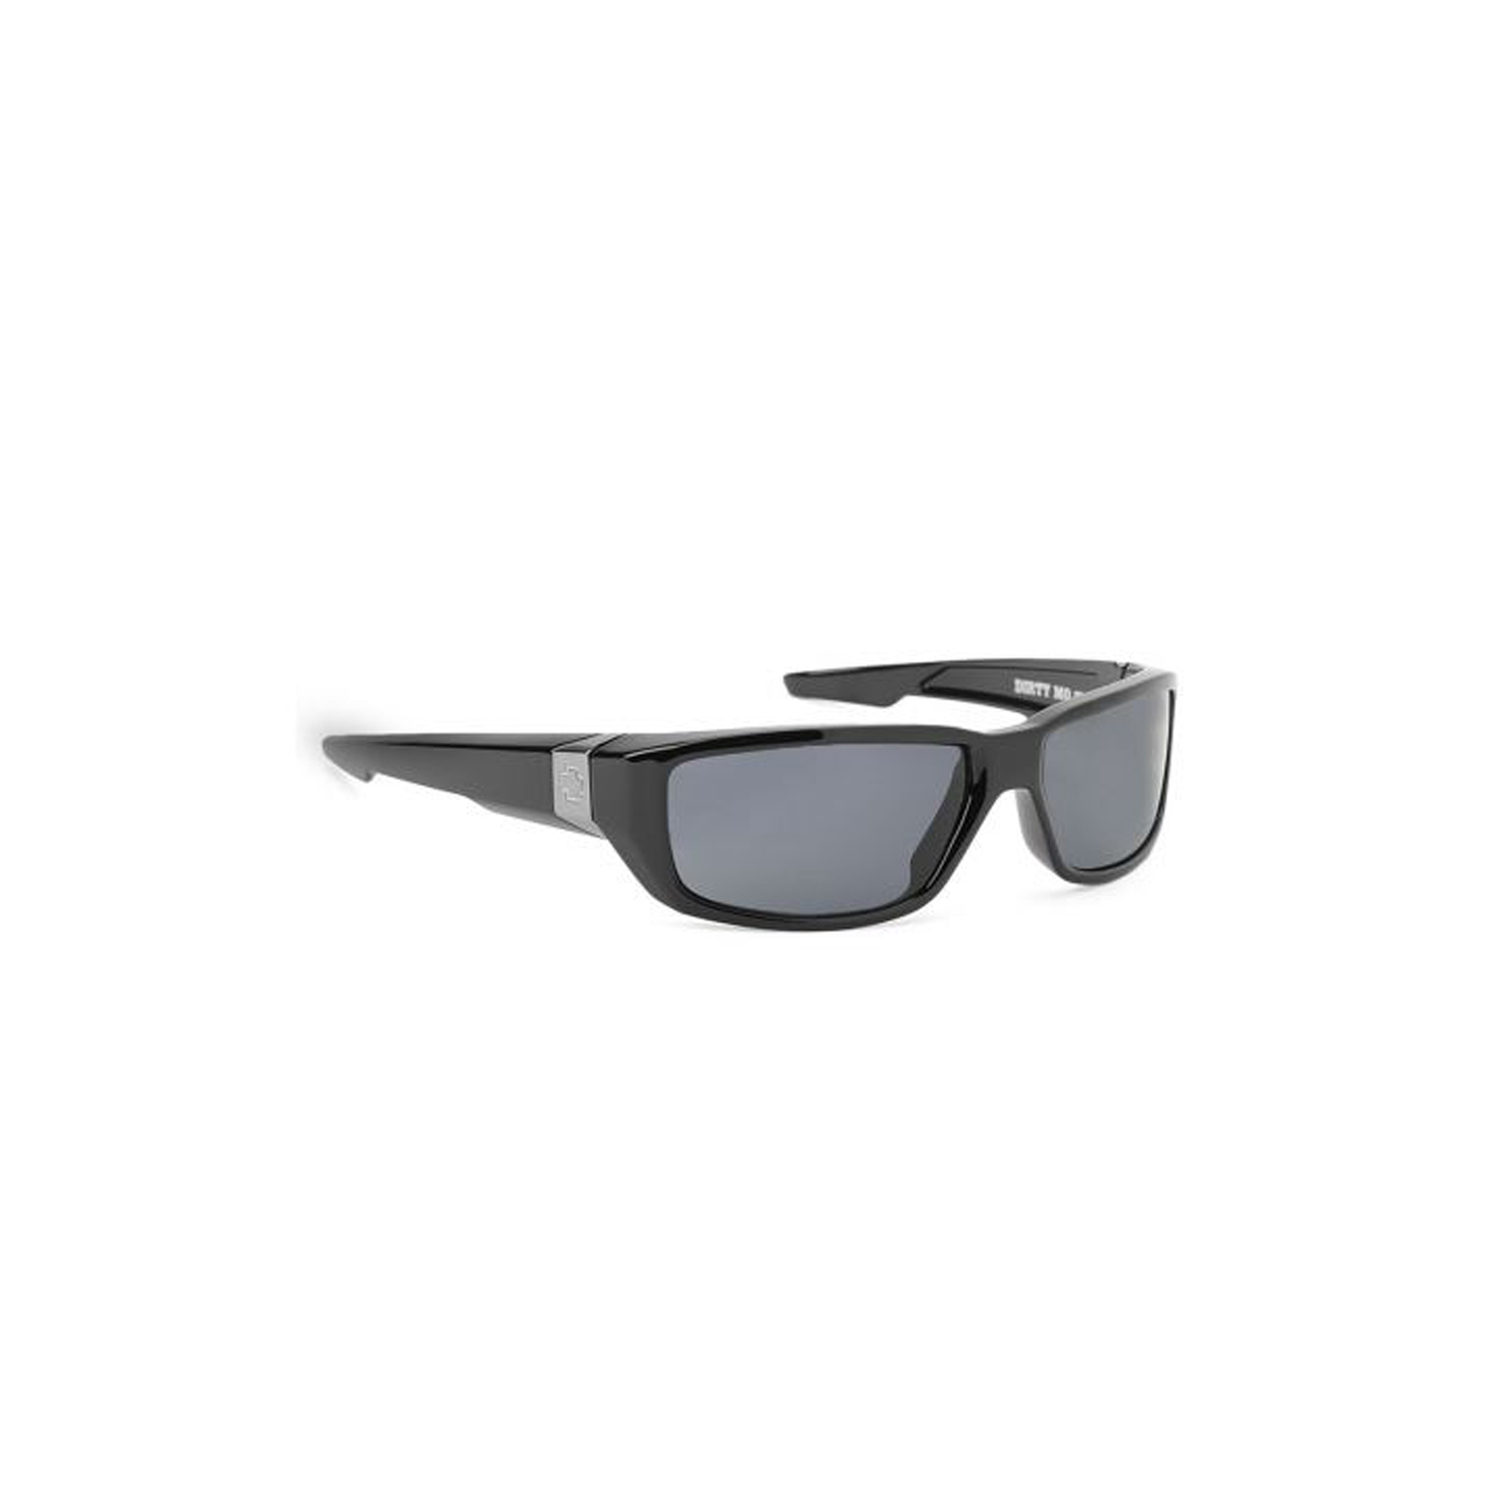 8f28225c21336 Spy Optic Dirty Mo Polarized Sunglasses